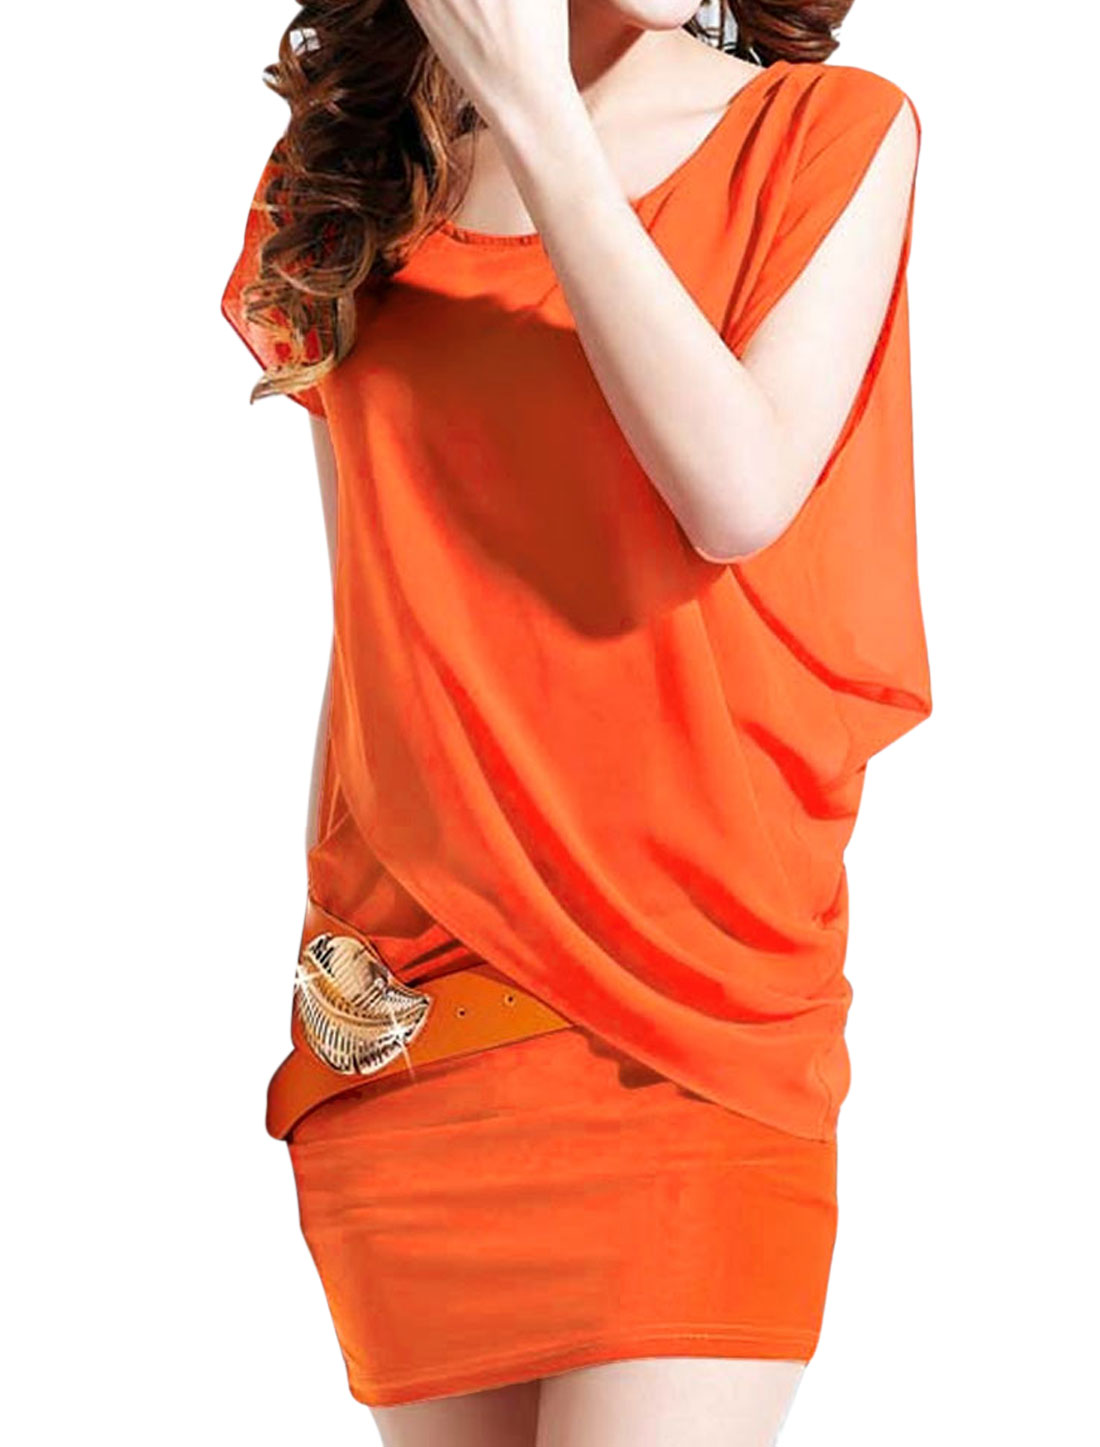 Ladies Orange Dolman Sleeves Casual Scoop Neck Summer Stylish Dress XS